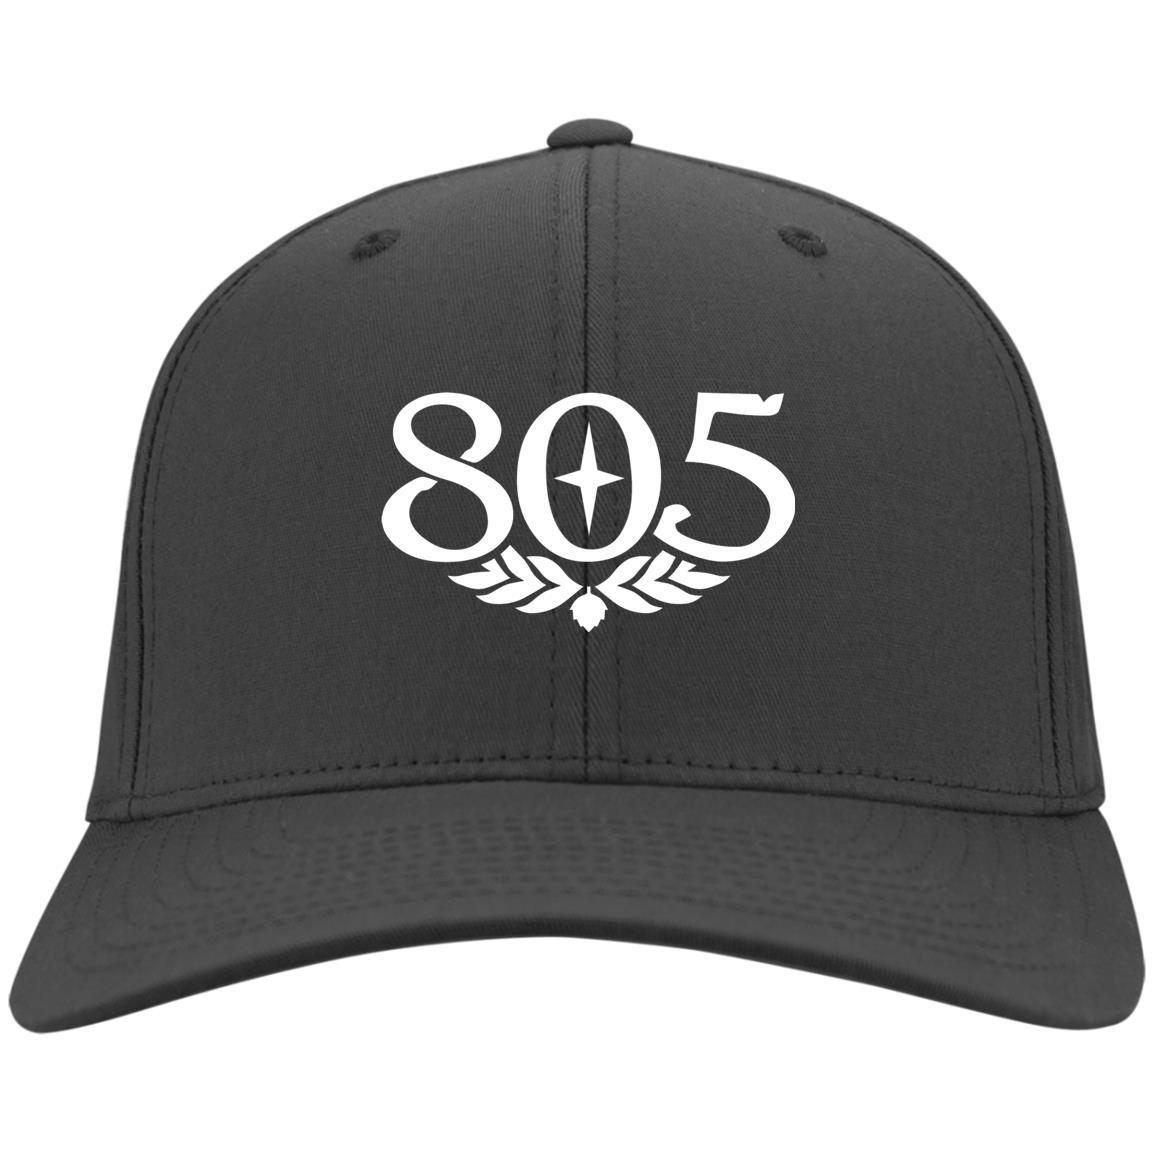 805 Beer - Port & Co. Twill Cap Charcoal